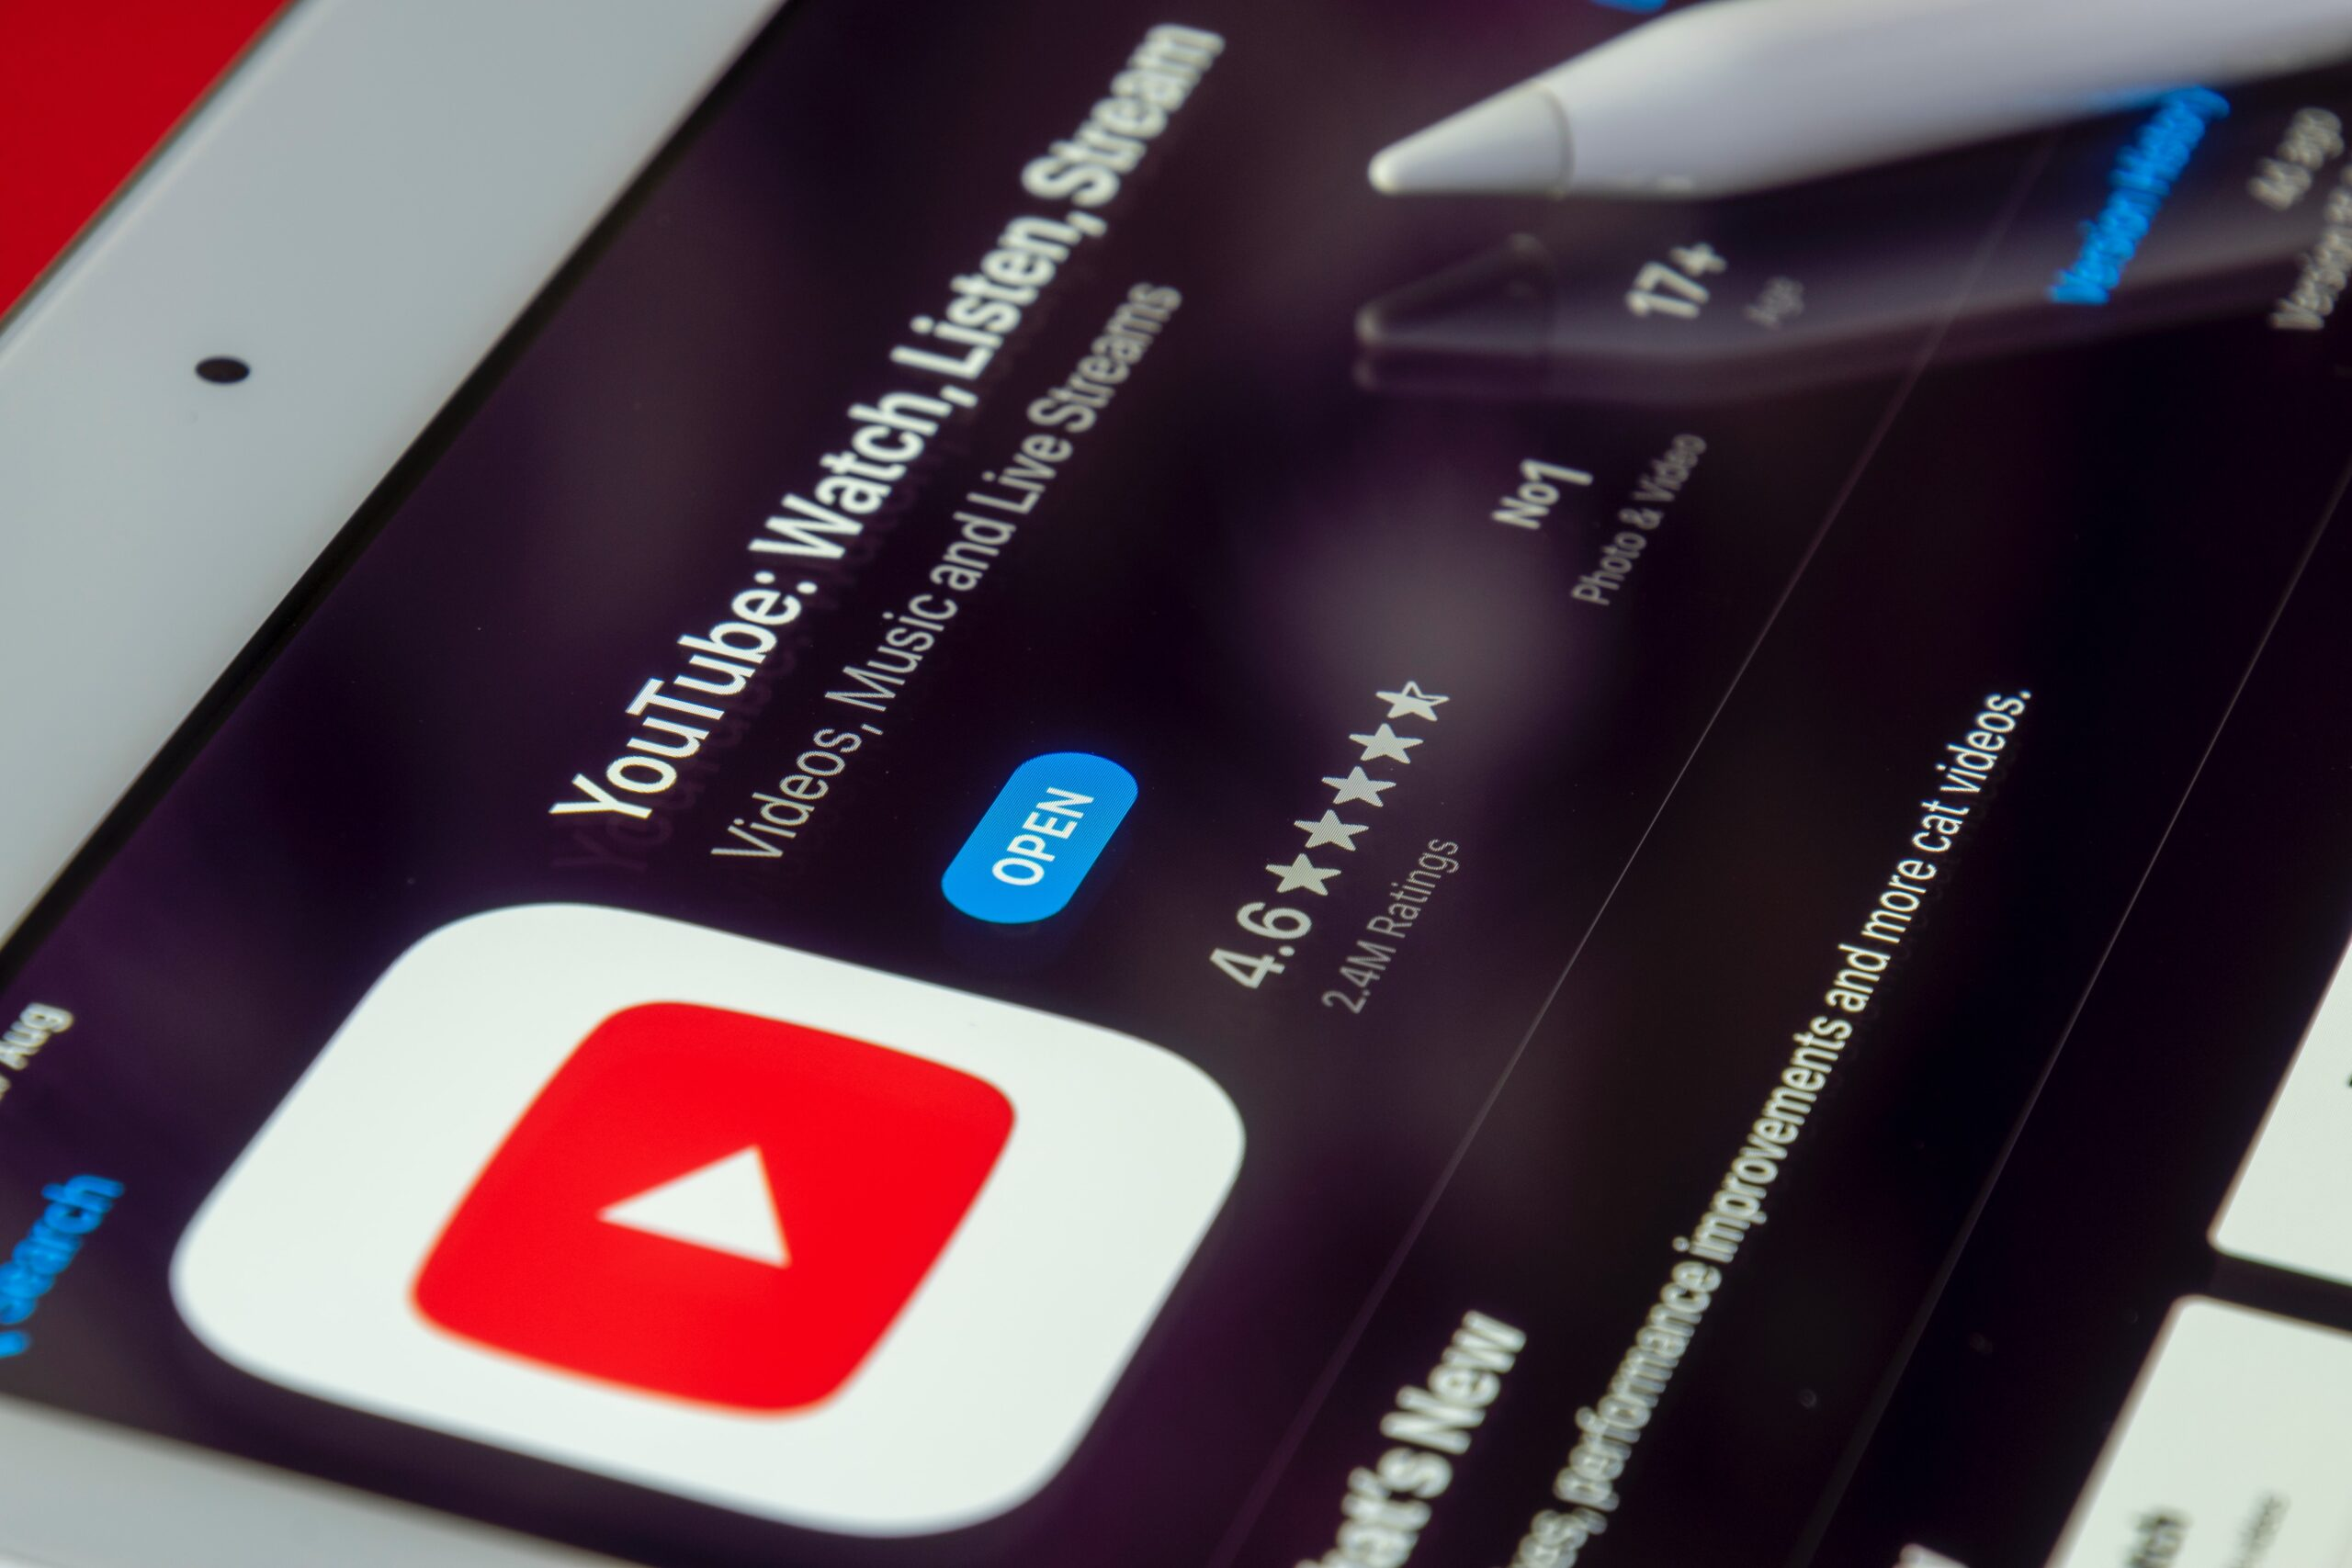 Channel News Asia: How Video-Streaming Platforms Feed Hate and Sow Divisions and What We Can Do About It